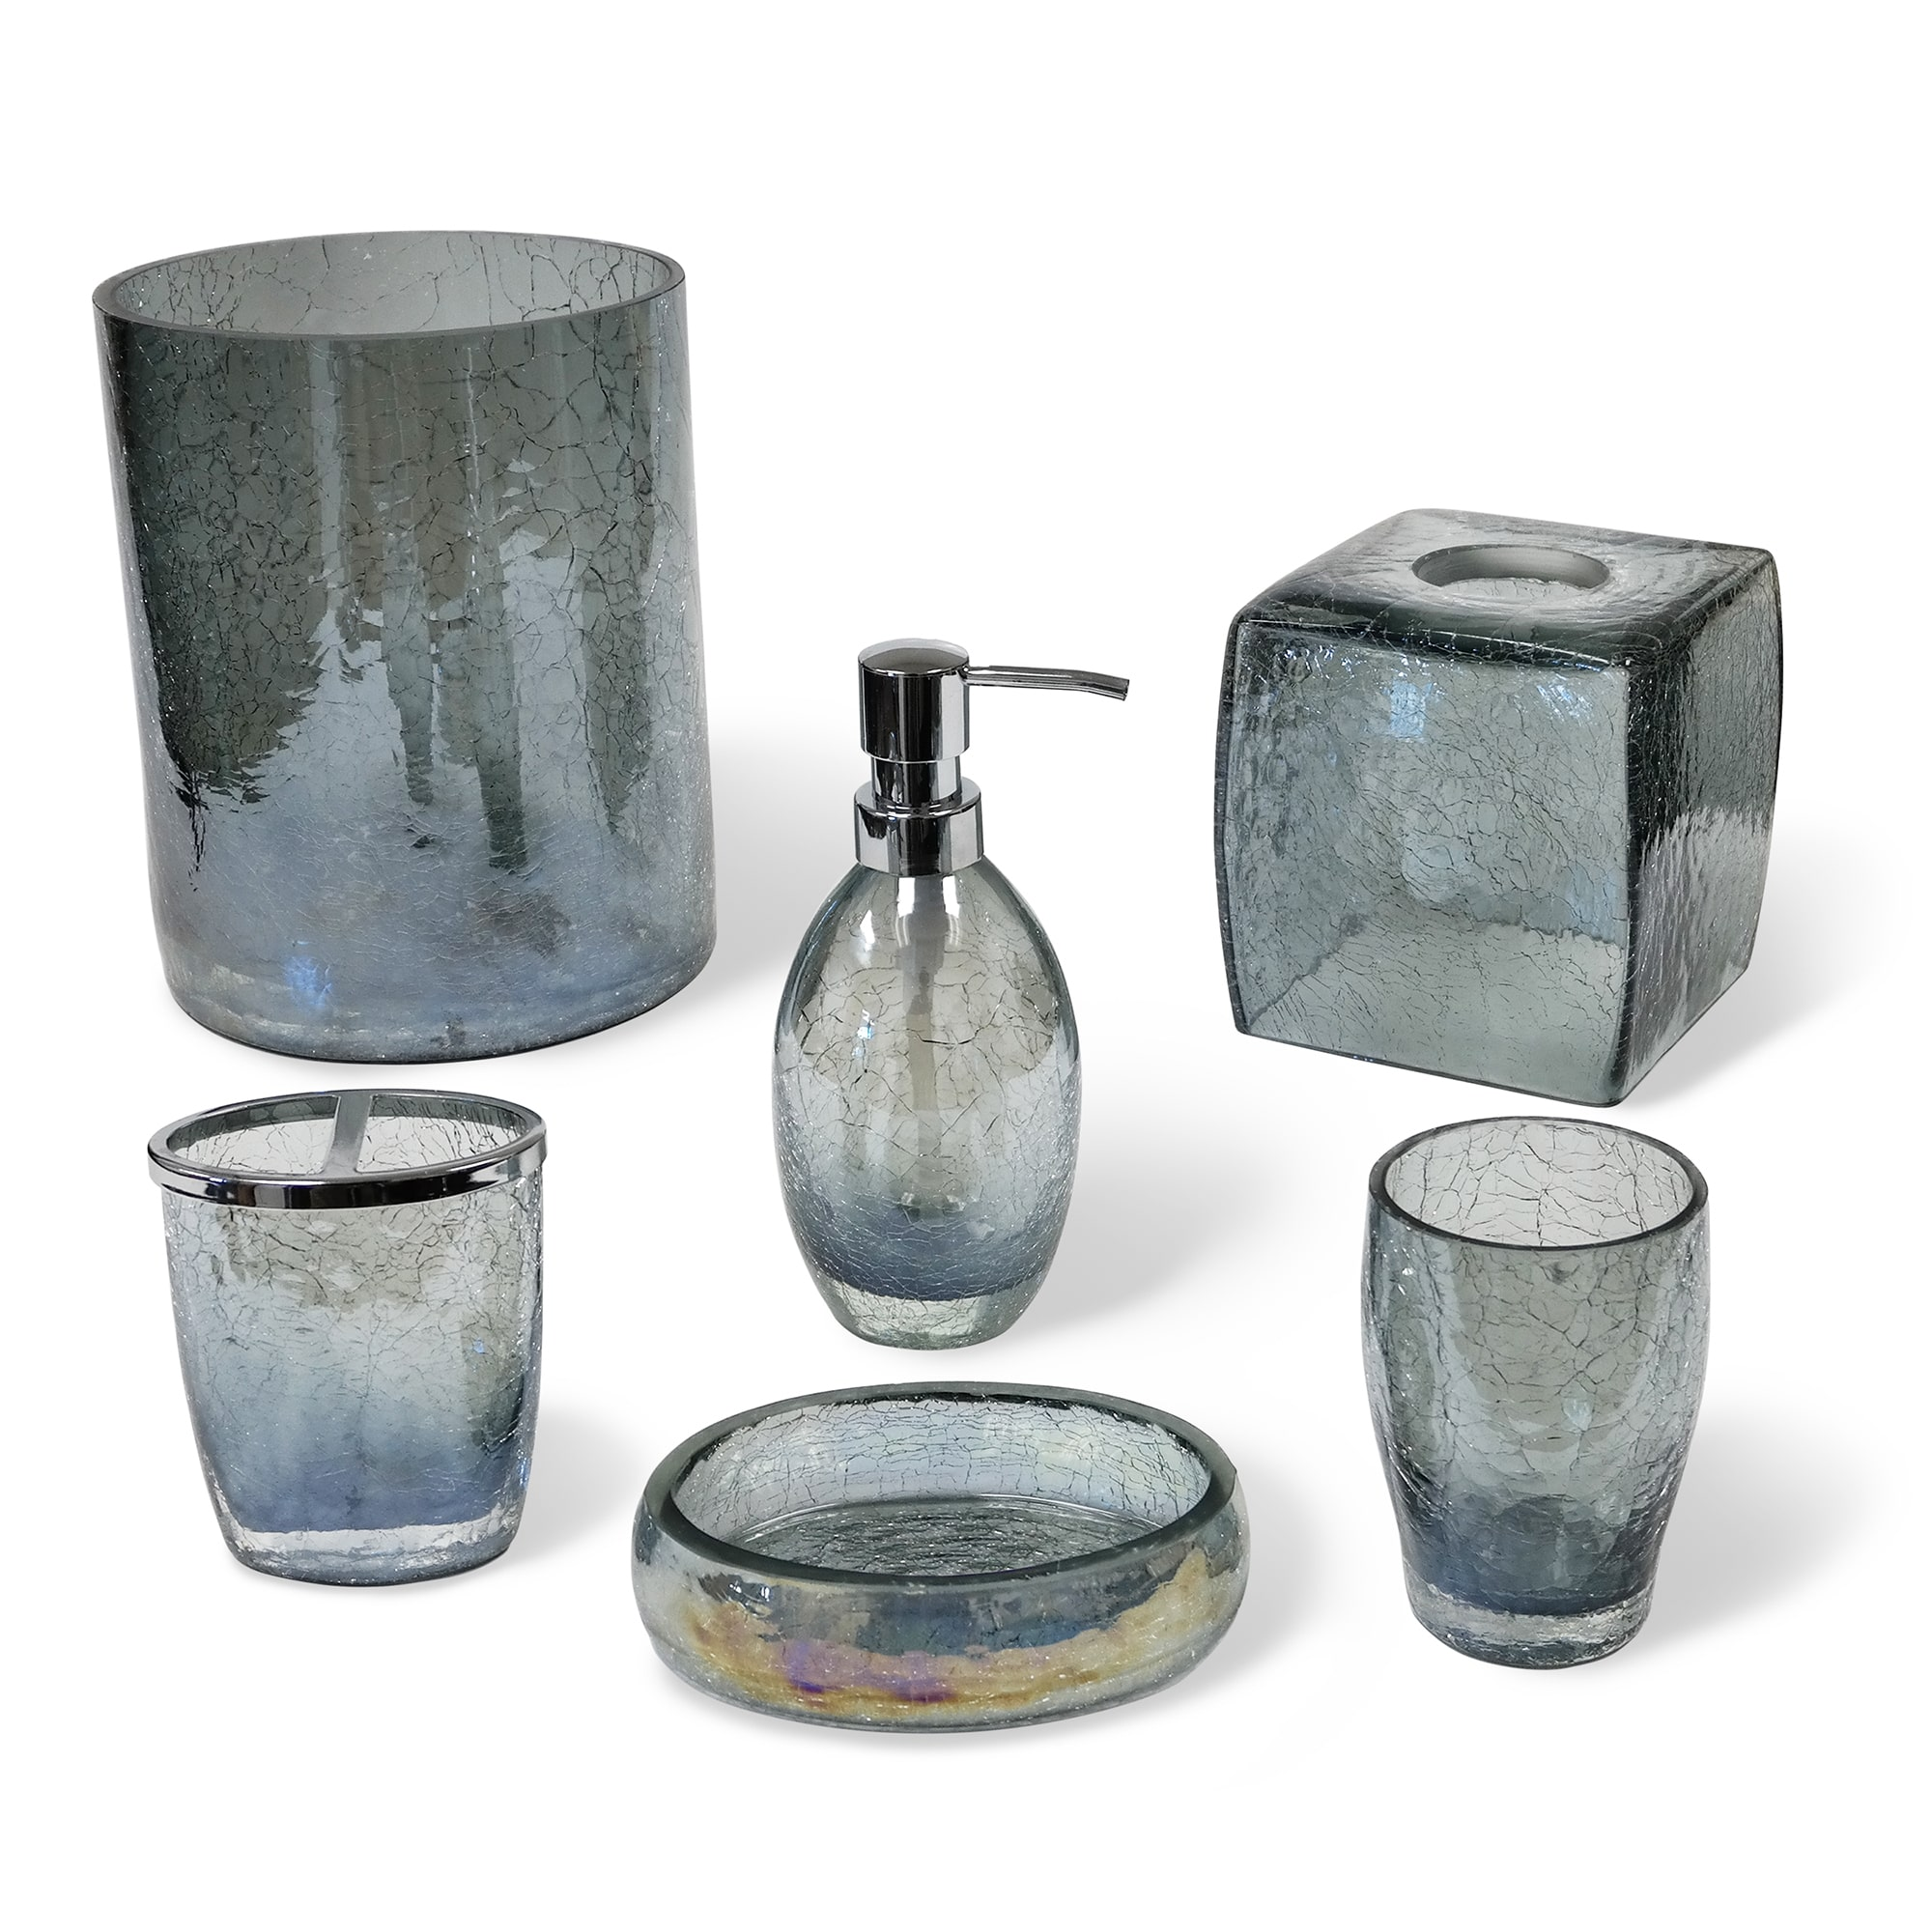 Ordinaire Veratex Cracked Blue Glass Bathroom Accessories Collection